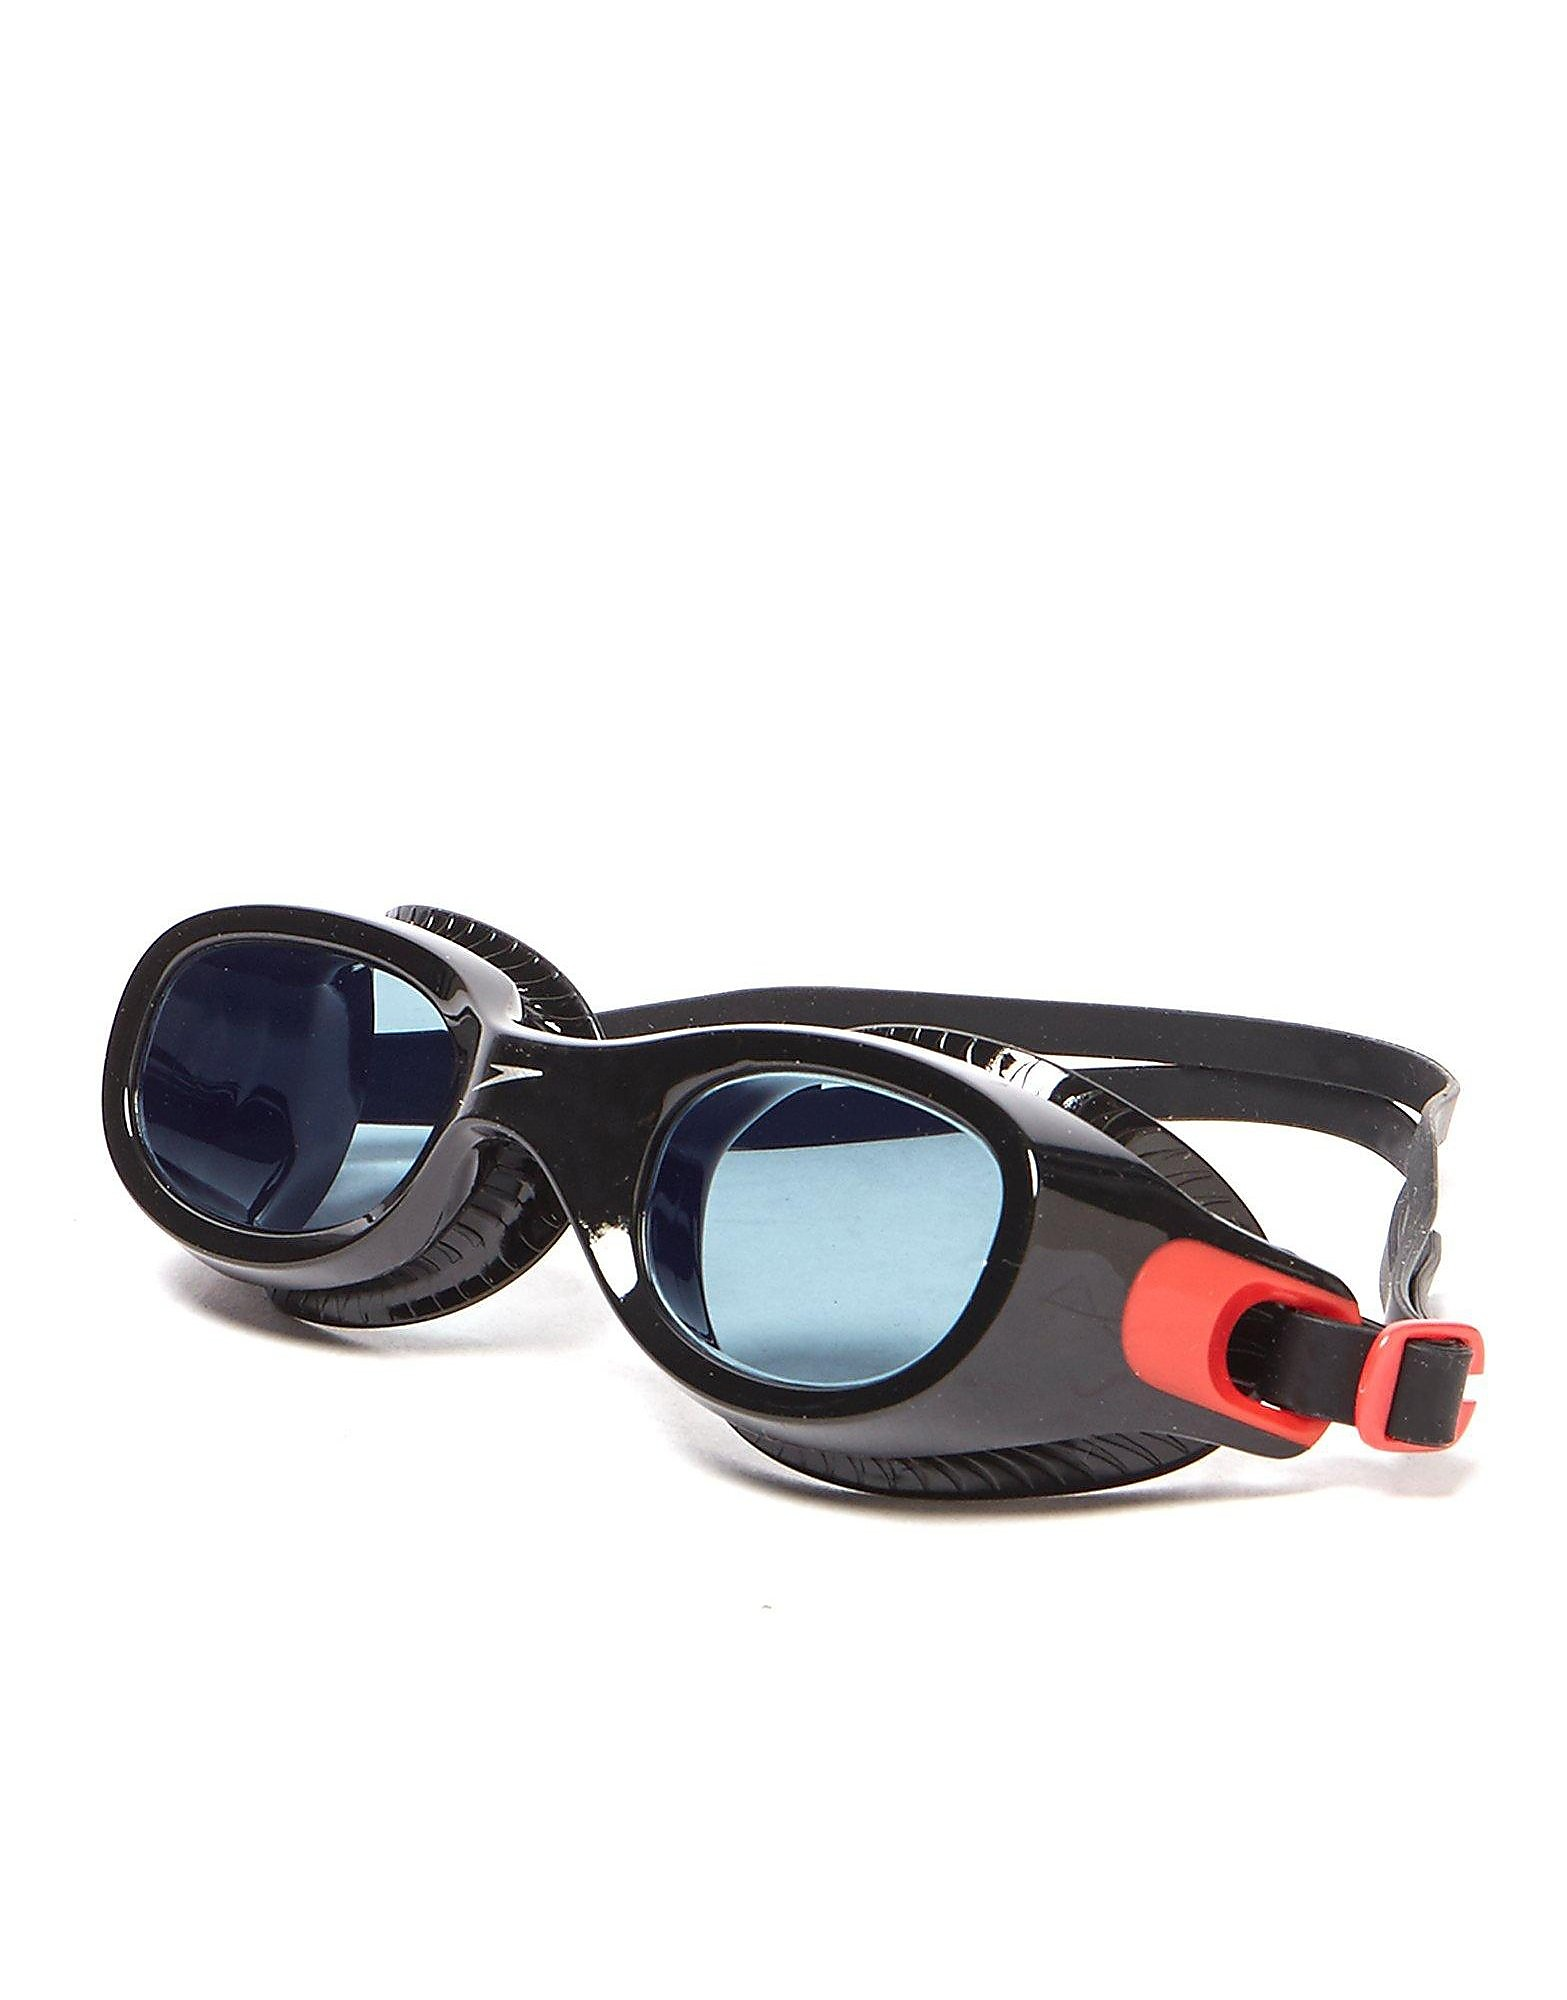 Speedo Futura Classic Swimming Goggle